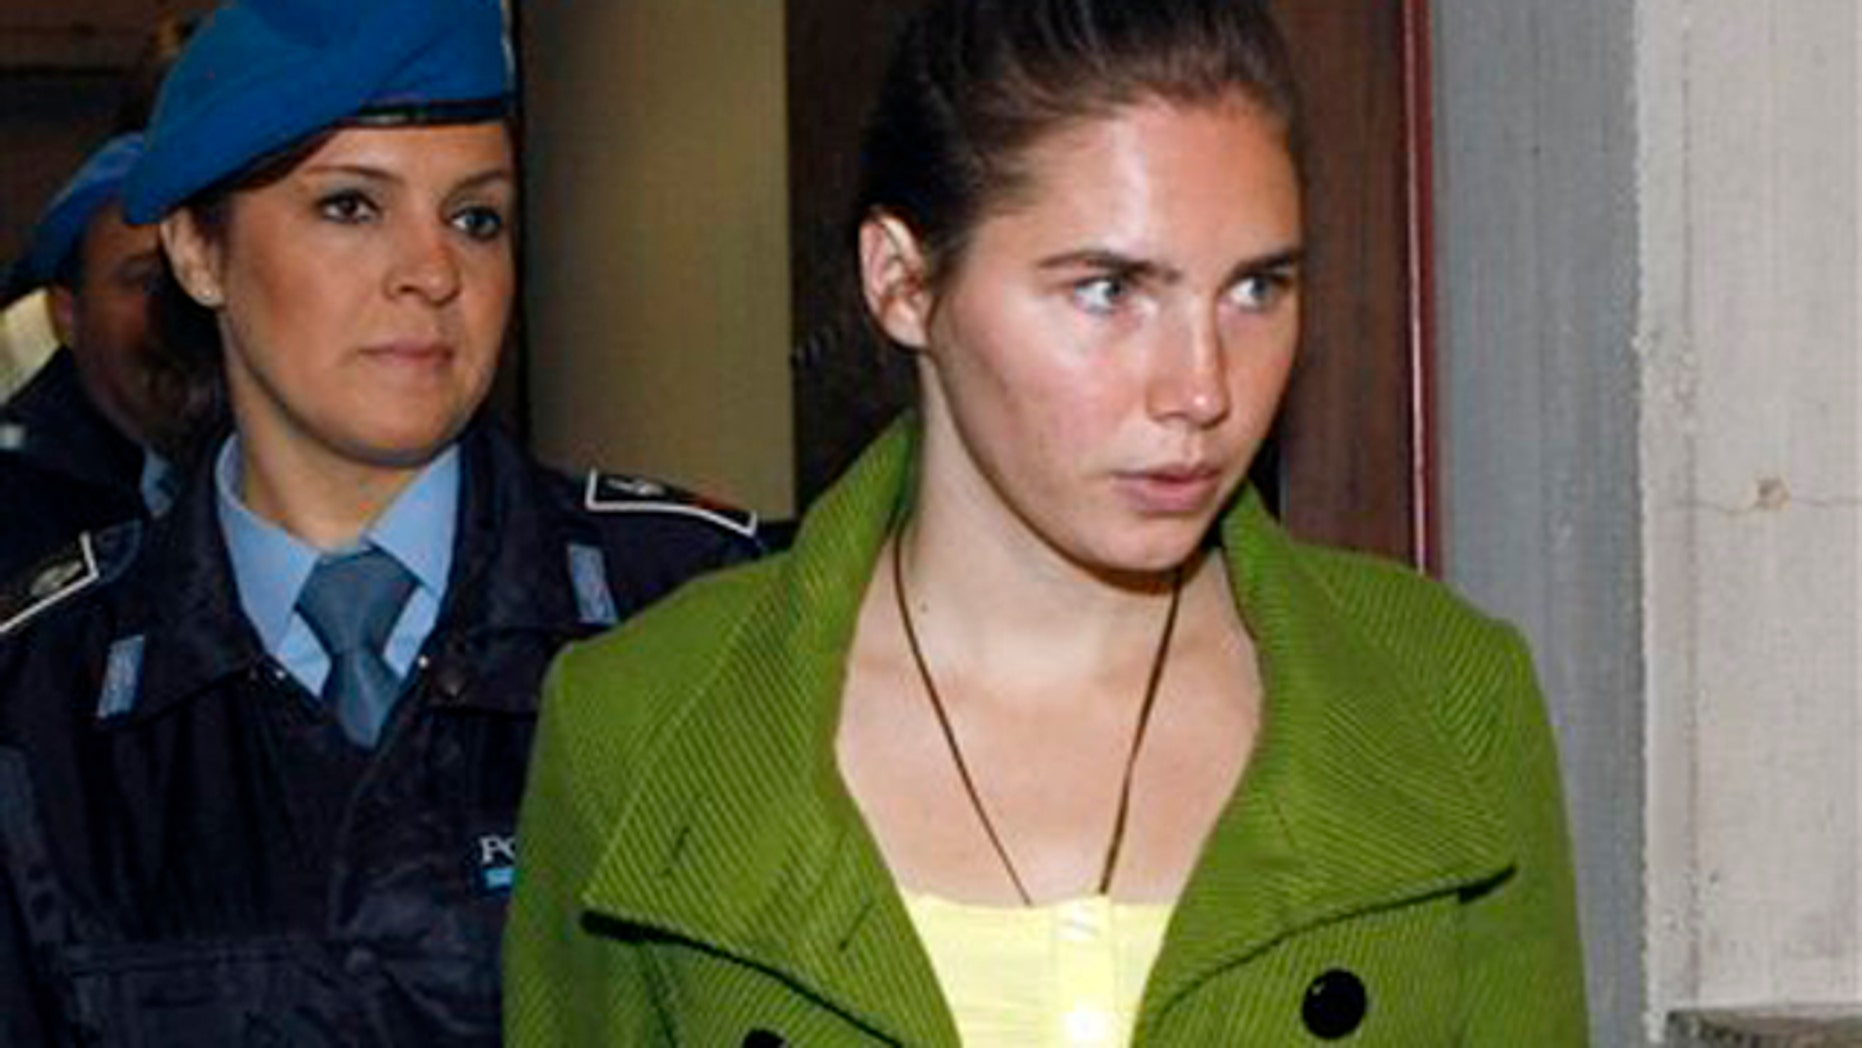 Dec. 4: Amanda Knox is accompanied by a penitentiary police officer prior to a final hearing at the court in Perugia, Italy. Knox was found guilty of murdering her British roommate Meredith Kercher. (AP photo)